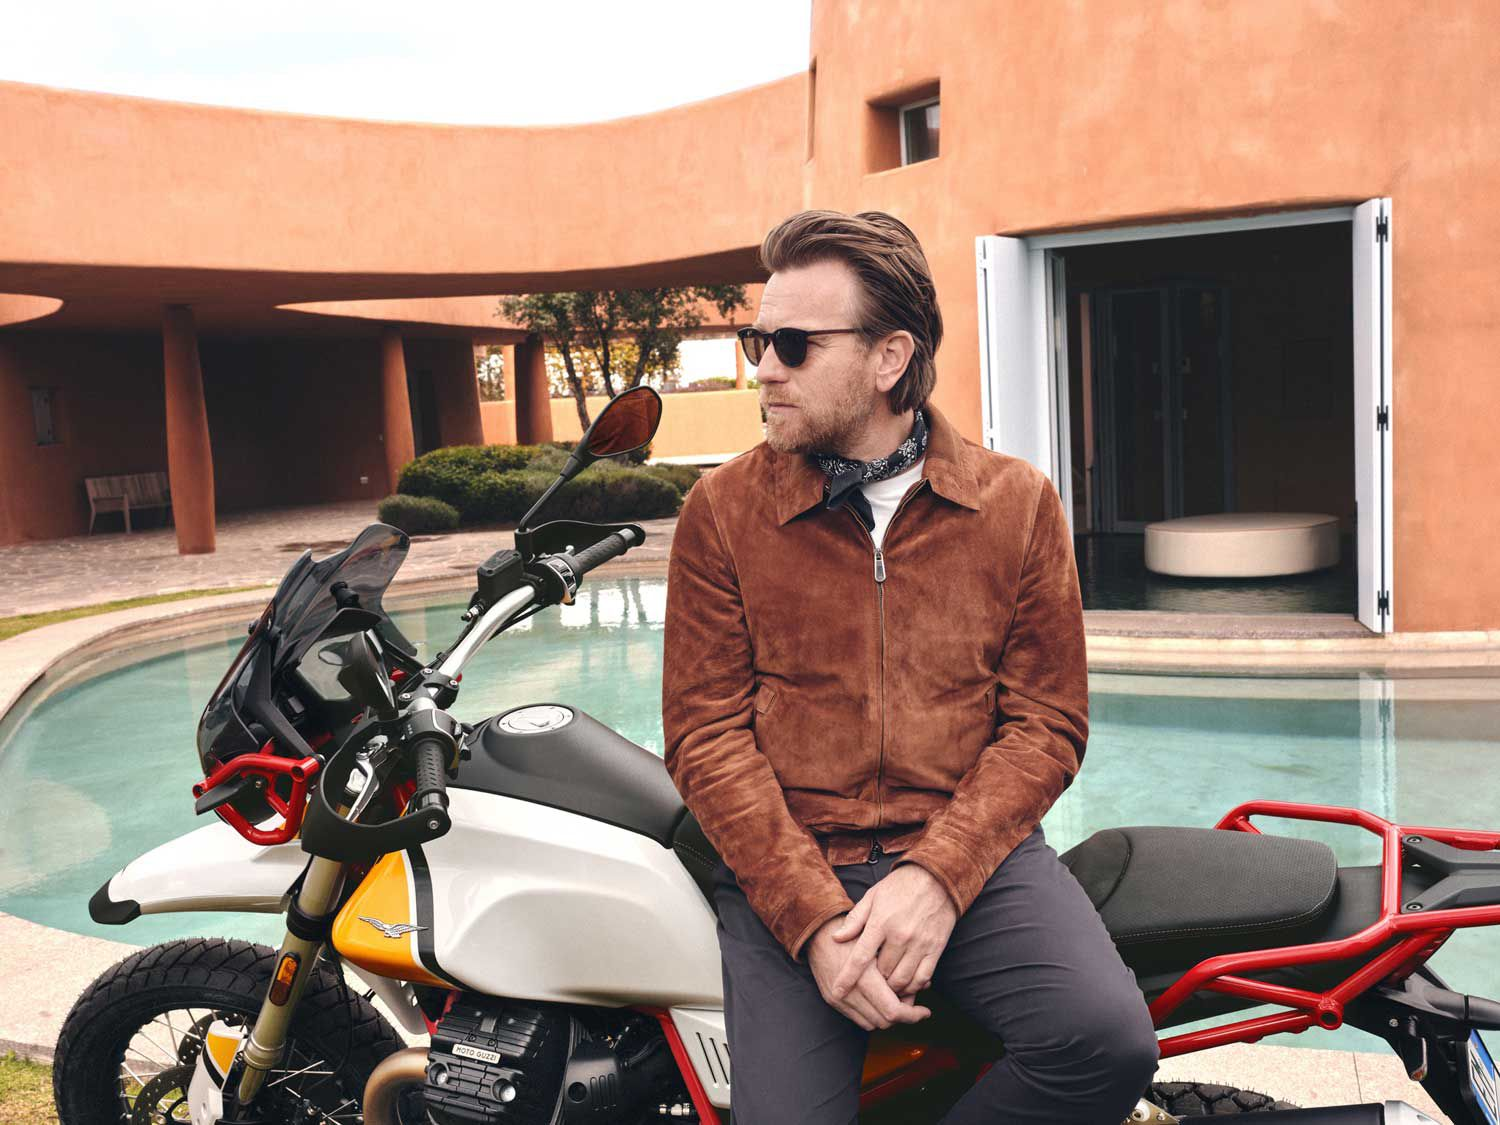 """<strong>Actor Ewan McGregor:</strong> In 2013, Ewan McGregor was part of a Moto Guzzi ad campaign and has owned at least 10 Moto Guzzis. In fact, in May, Moto Guzzi announced the actor as the ambassador for the V85TT. You might also remember that he made a 19,000-mile trip around the world with Charley Boorman in the """"Long Way Round"""" series."""